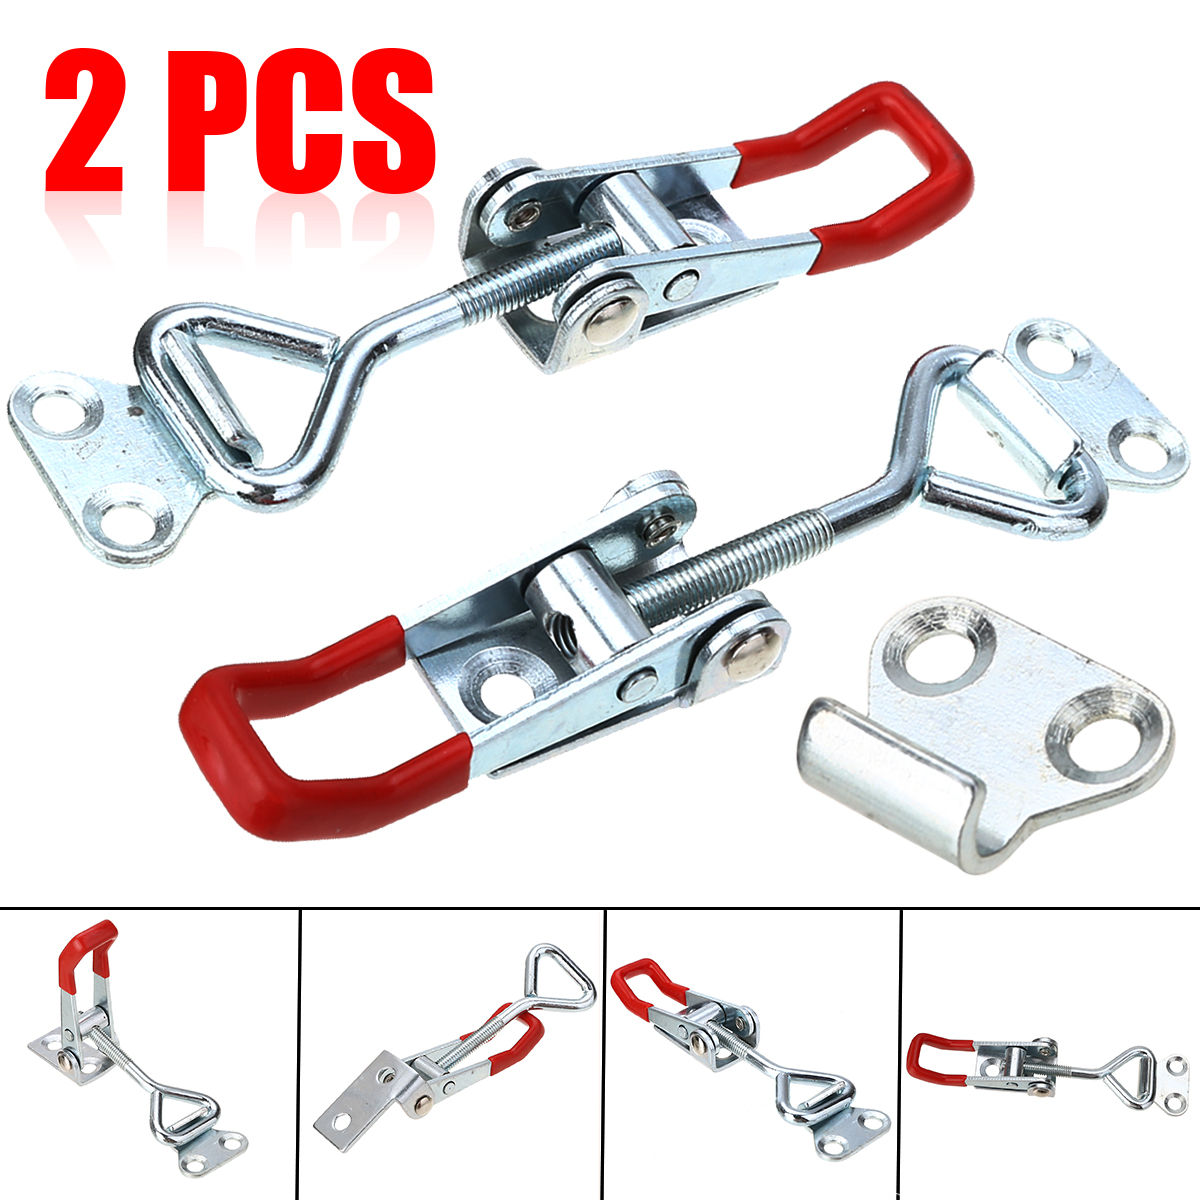 2pcs Toggle Clamp Horizontal Clamp Cabinet Boxes Lever Handle Toggle Latch Catch Lock Clamp Hasp Adjustable